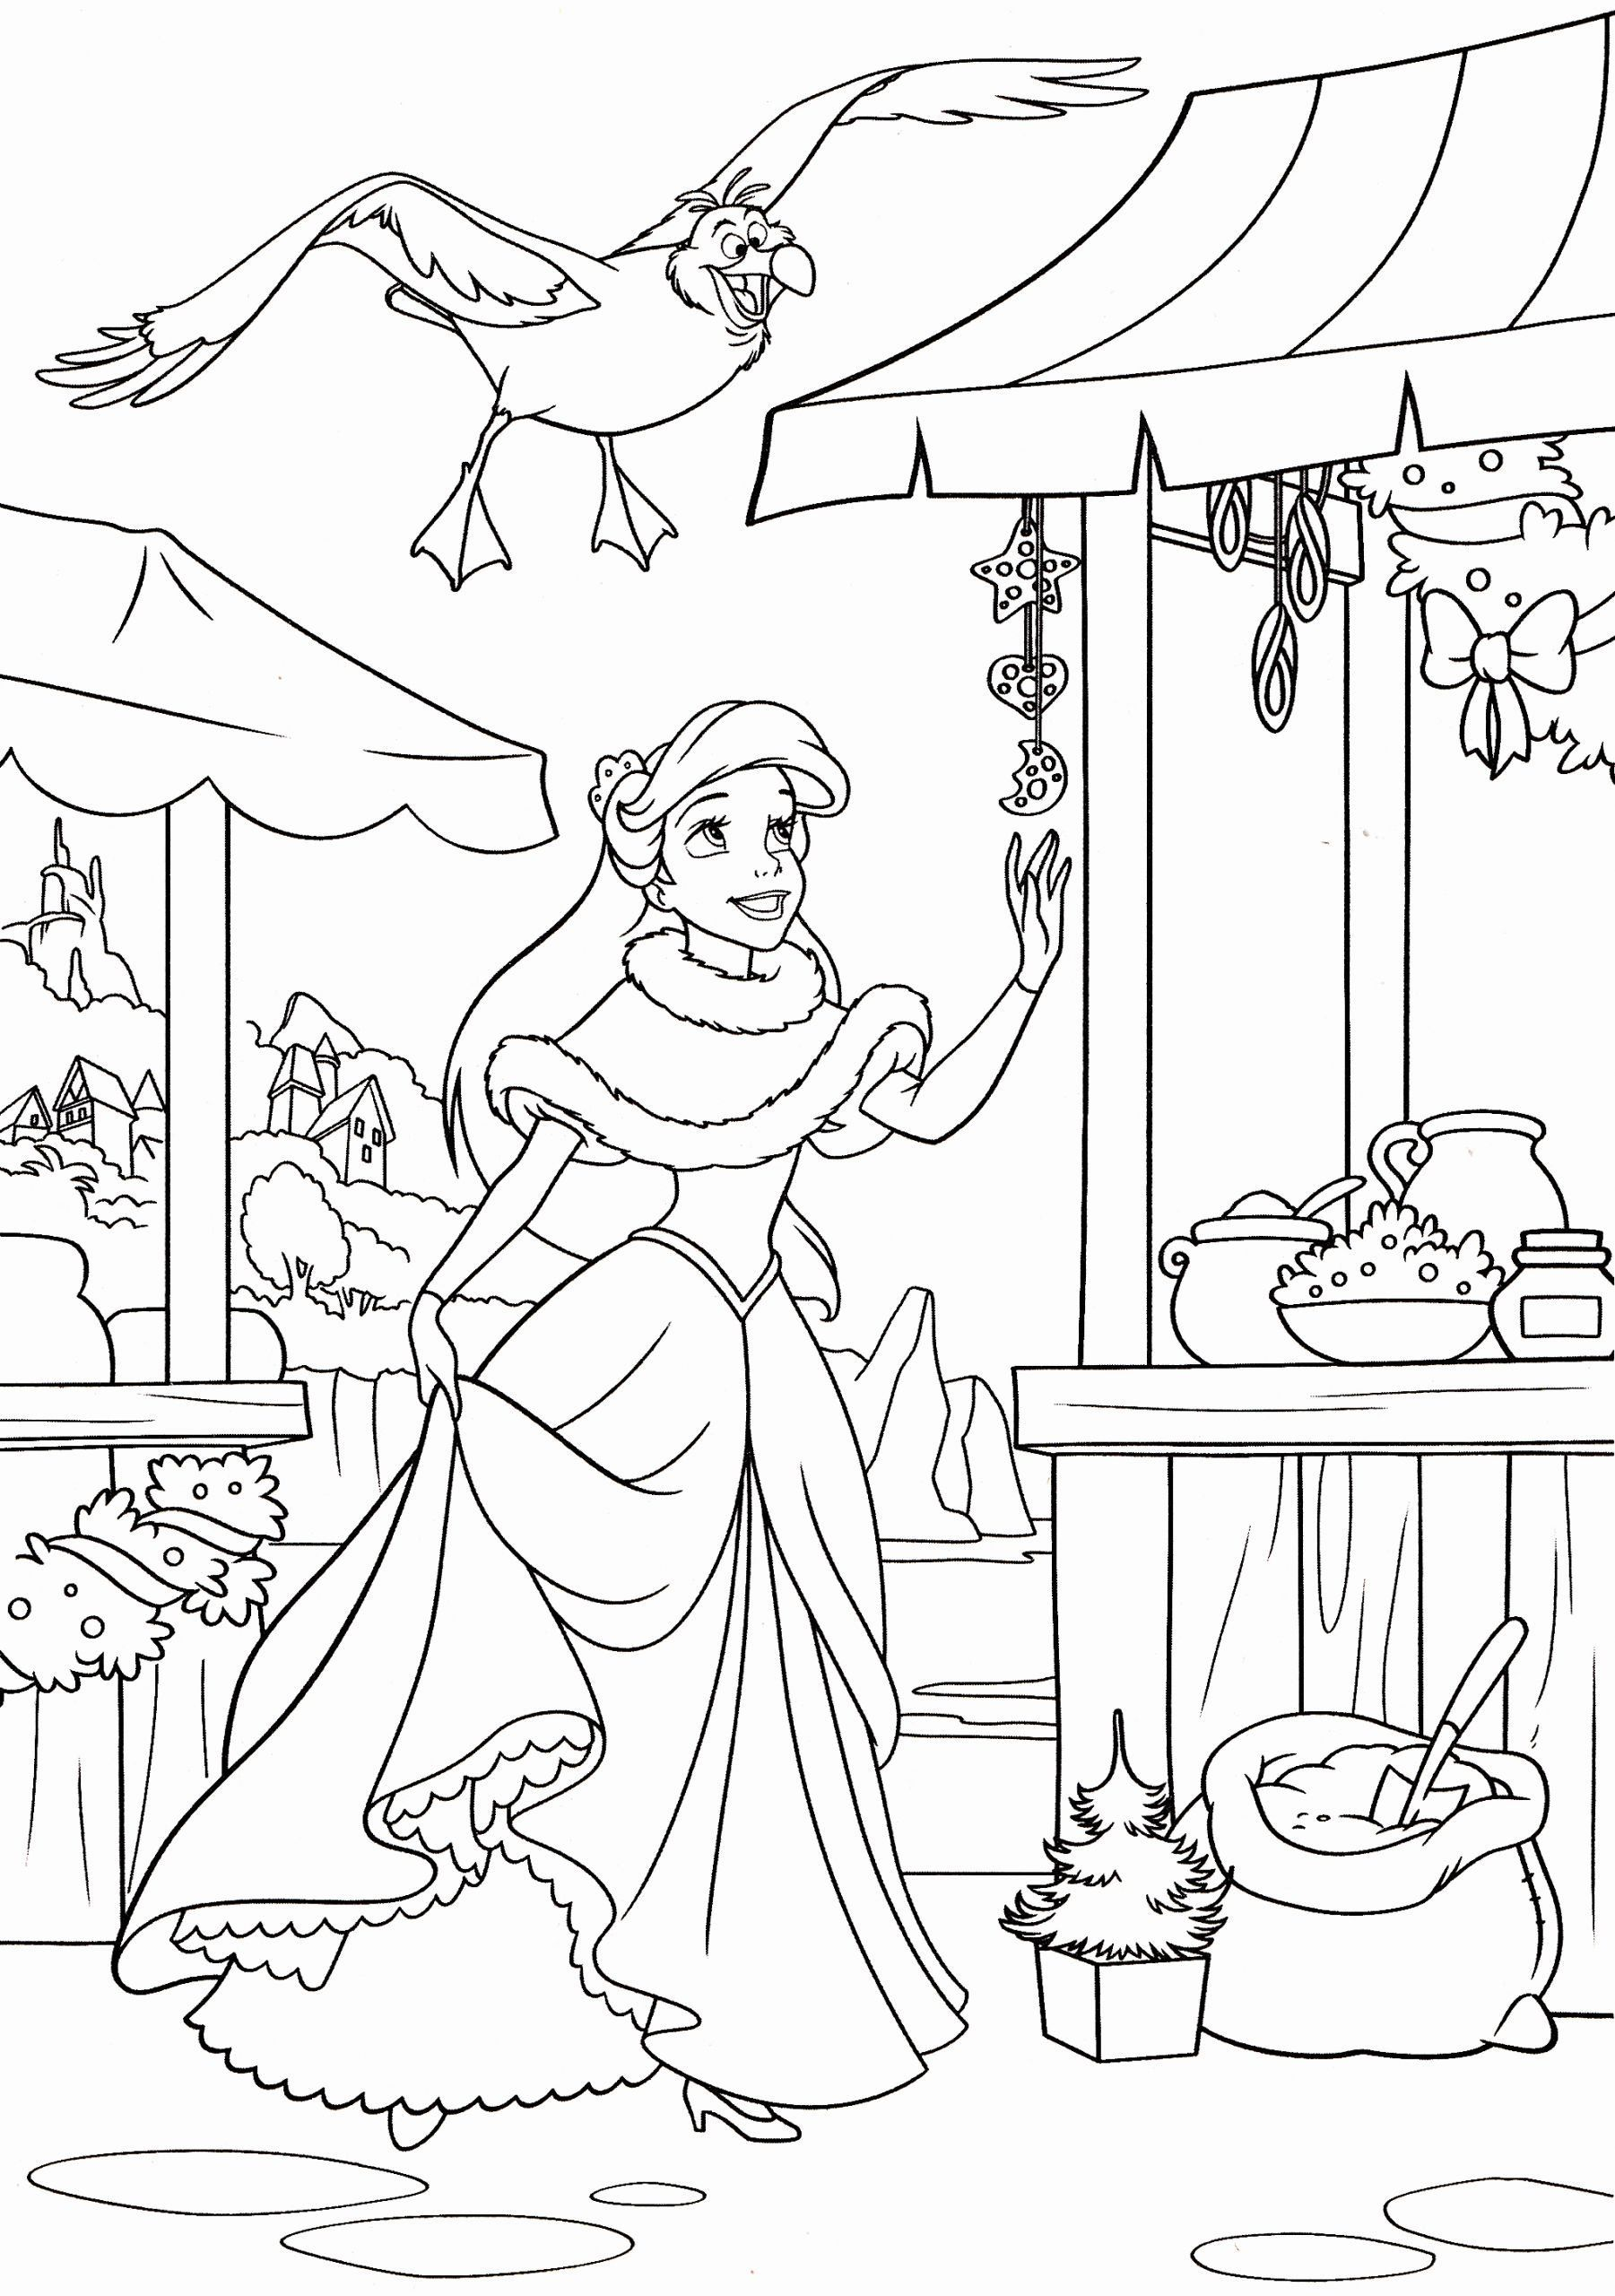 Disney Character Coloring Pages Best Of Printable Disney Princess Coloring Pages Mermaid Coloring Pages Disney Coloring Pages